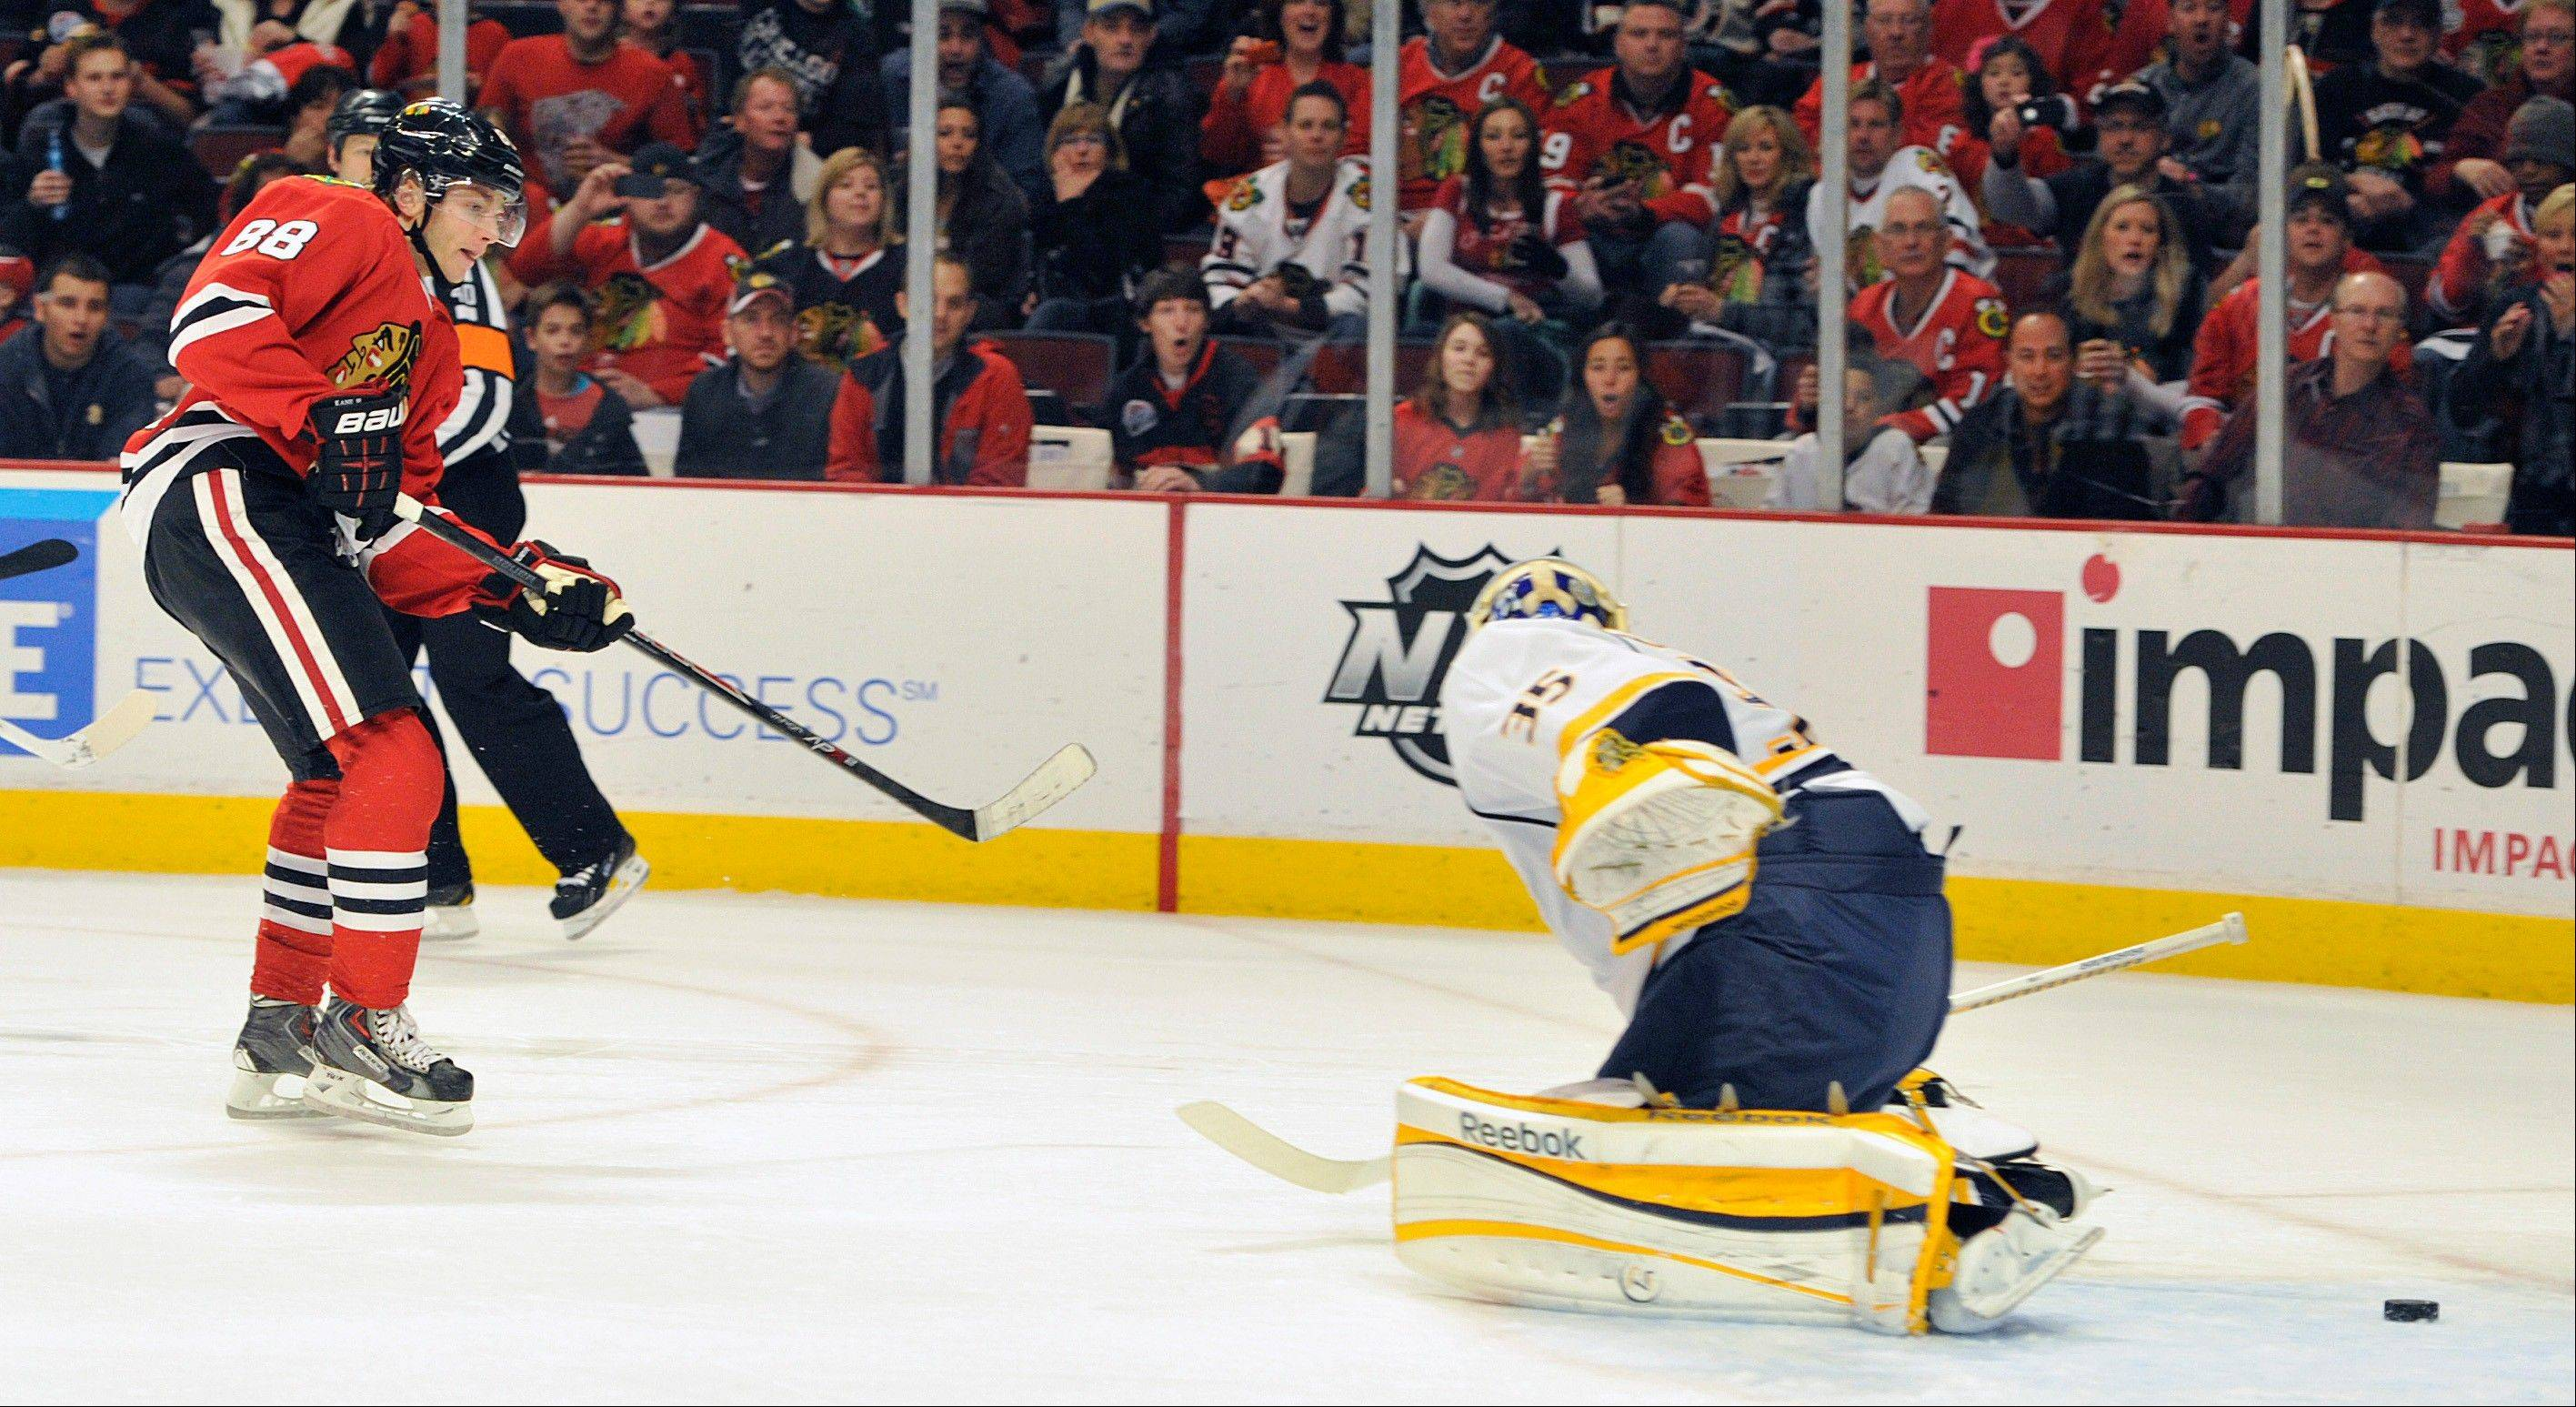 Associated Press The Blackhawks' Patrick Kane shoots the puck past Predators goalie Pekka Rinne during the second period Friday at the United Center.